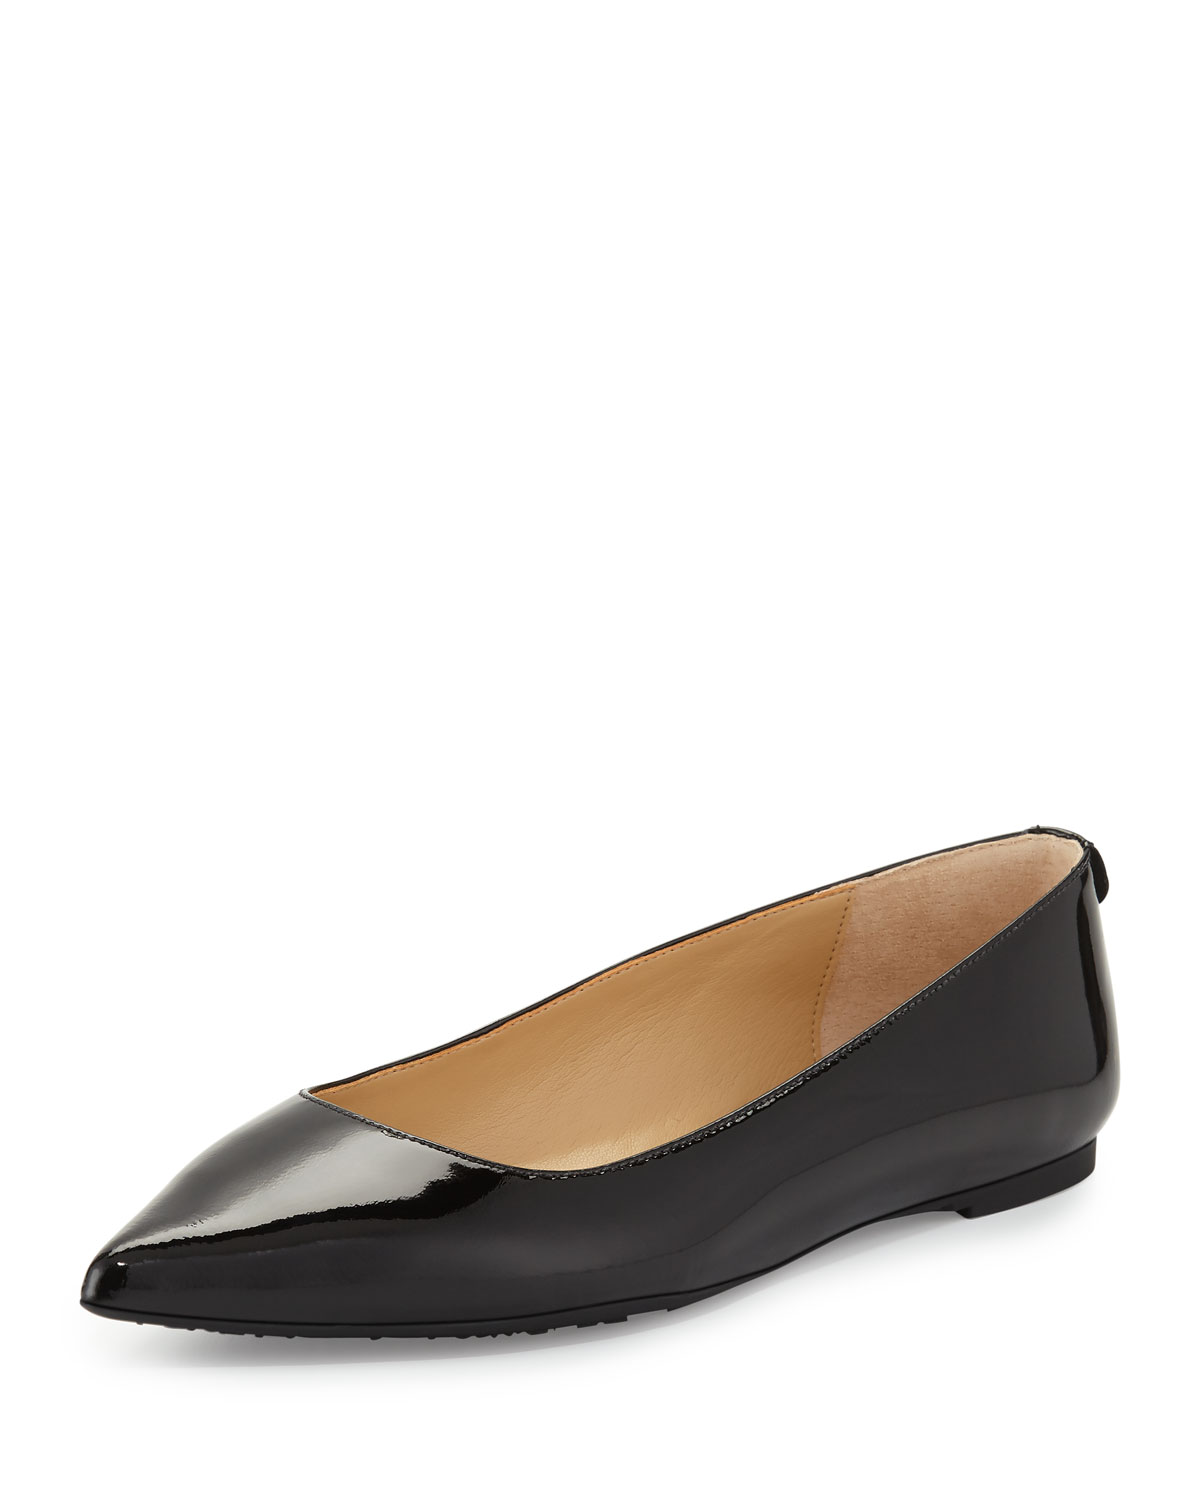 06ecf2175ce MICHAEL Michael Kors Arianna Patent Pointed-Toe Flat